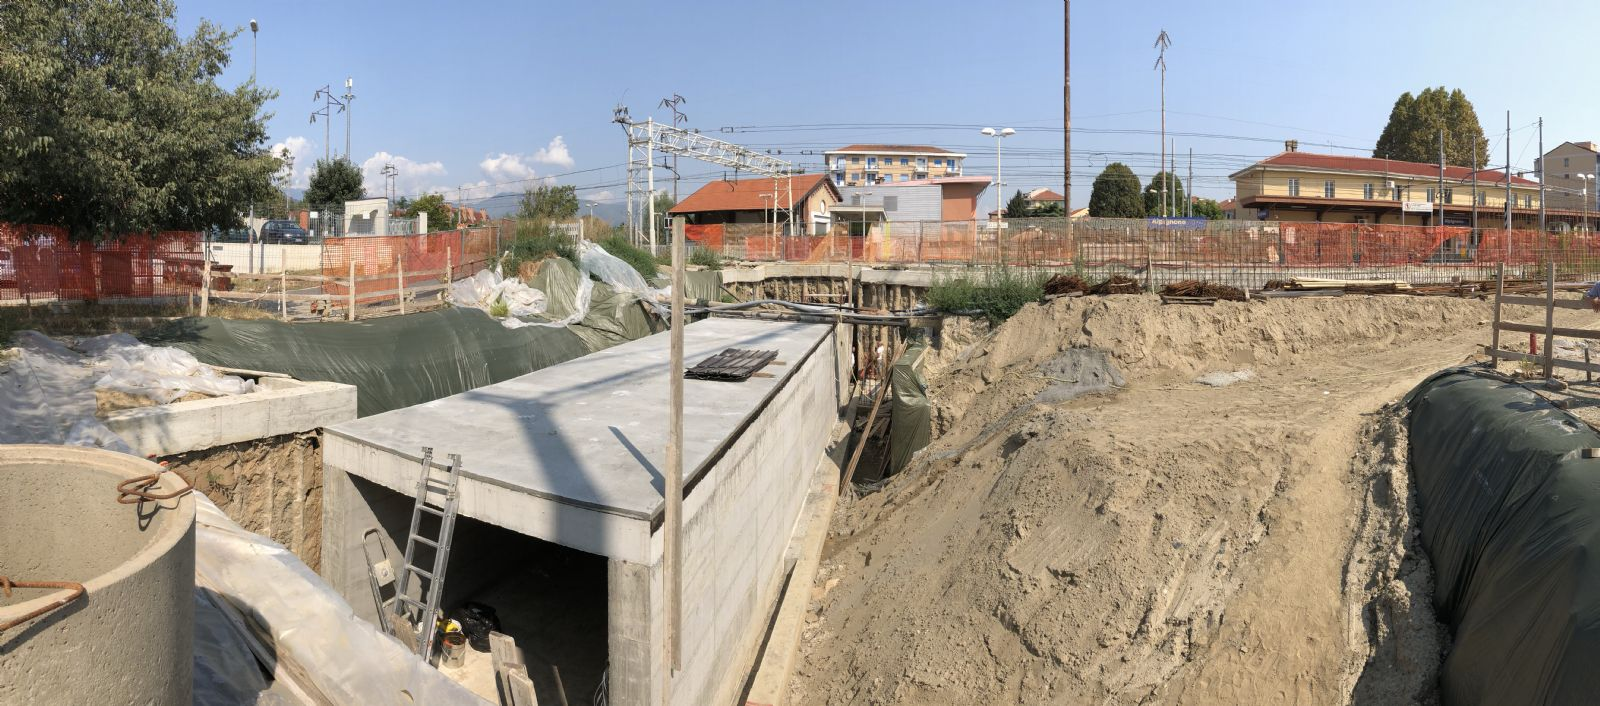 Work in progress: sottopasso MOVIcentro